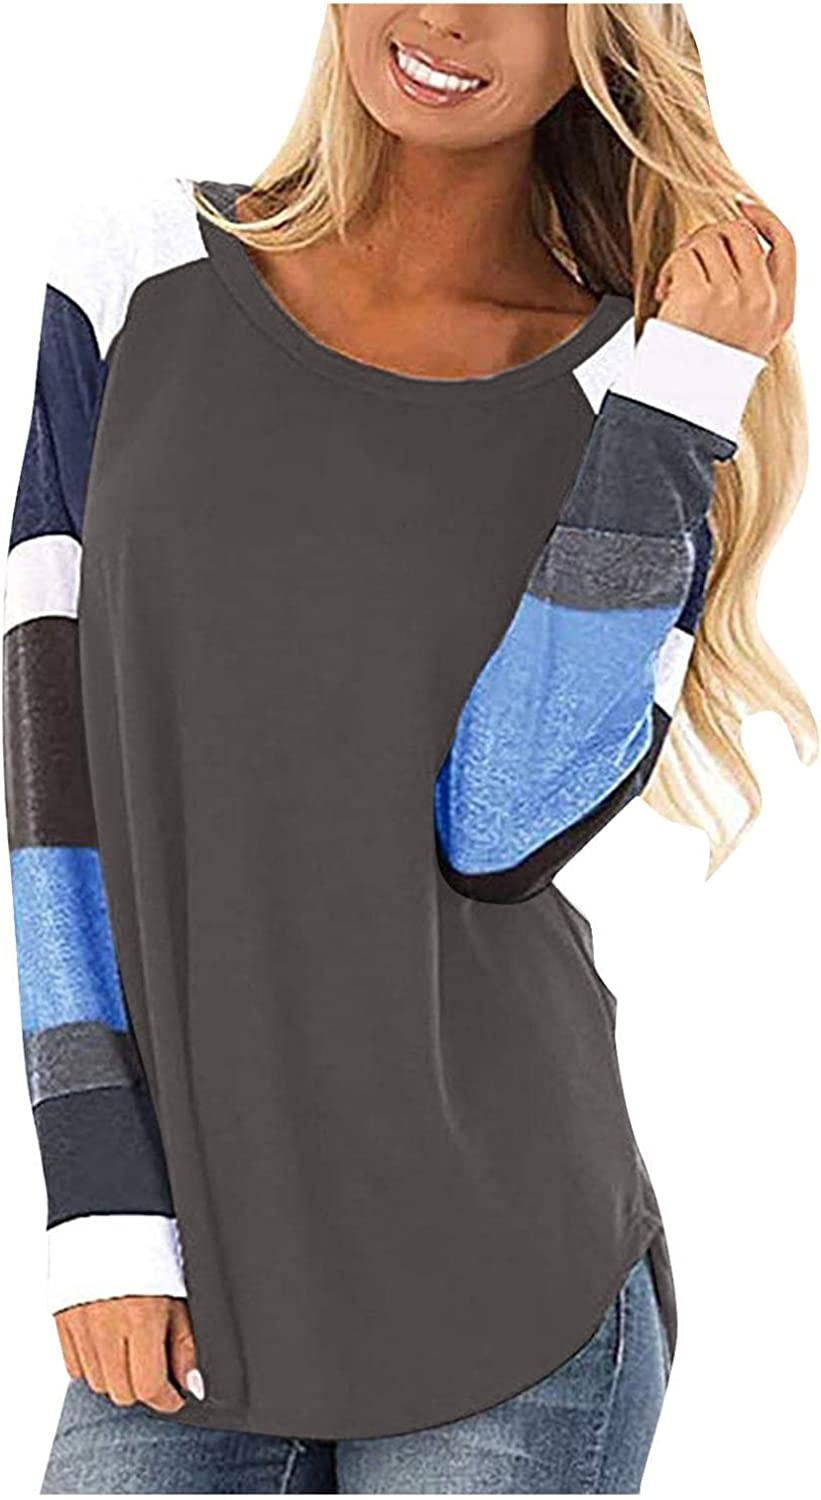 Sweatshirts for Women Crewneck,Women Casual Long Sleeved T-Shirt O-Neck Patchwork Printed Loose Pullover Blouse Tops